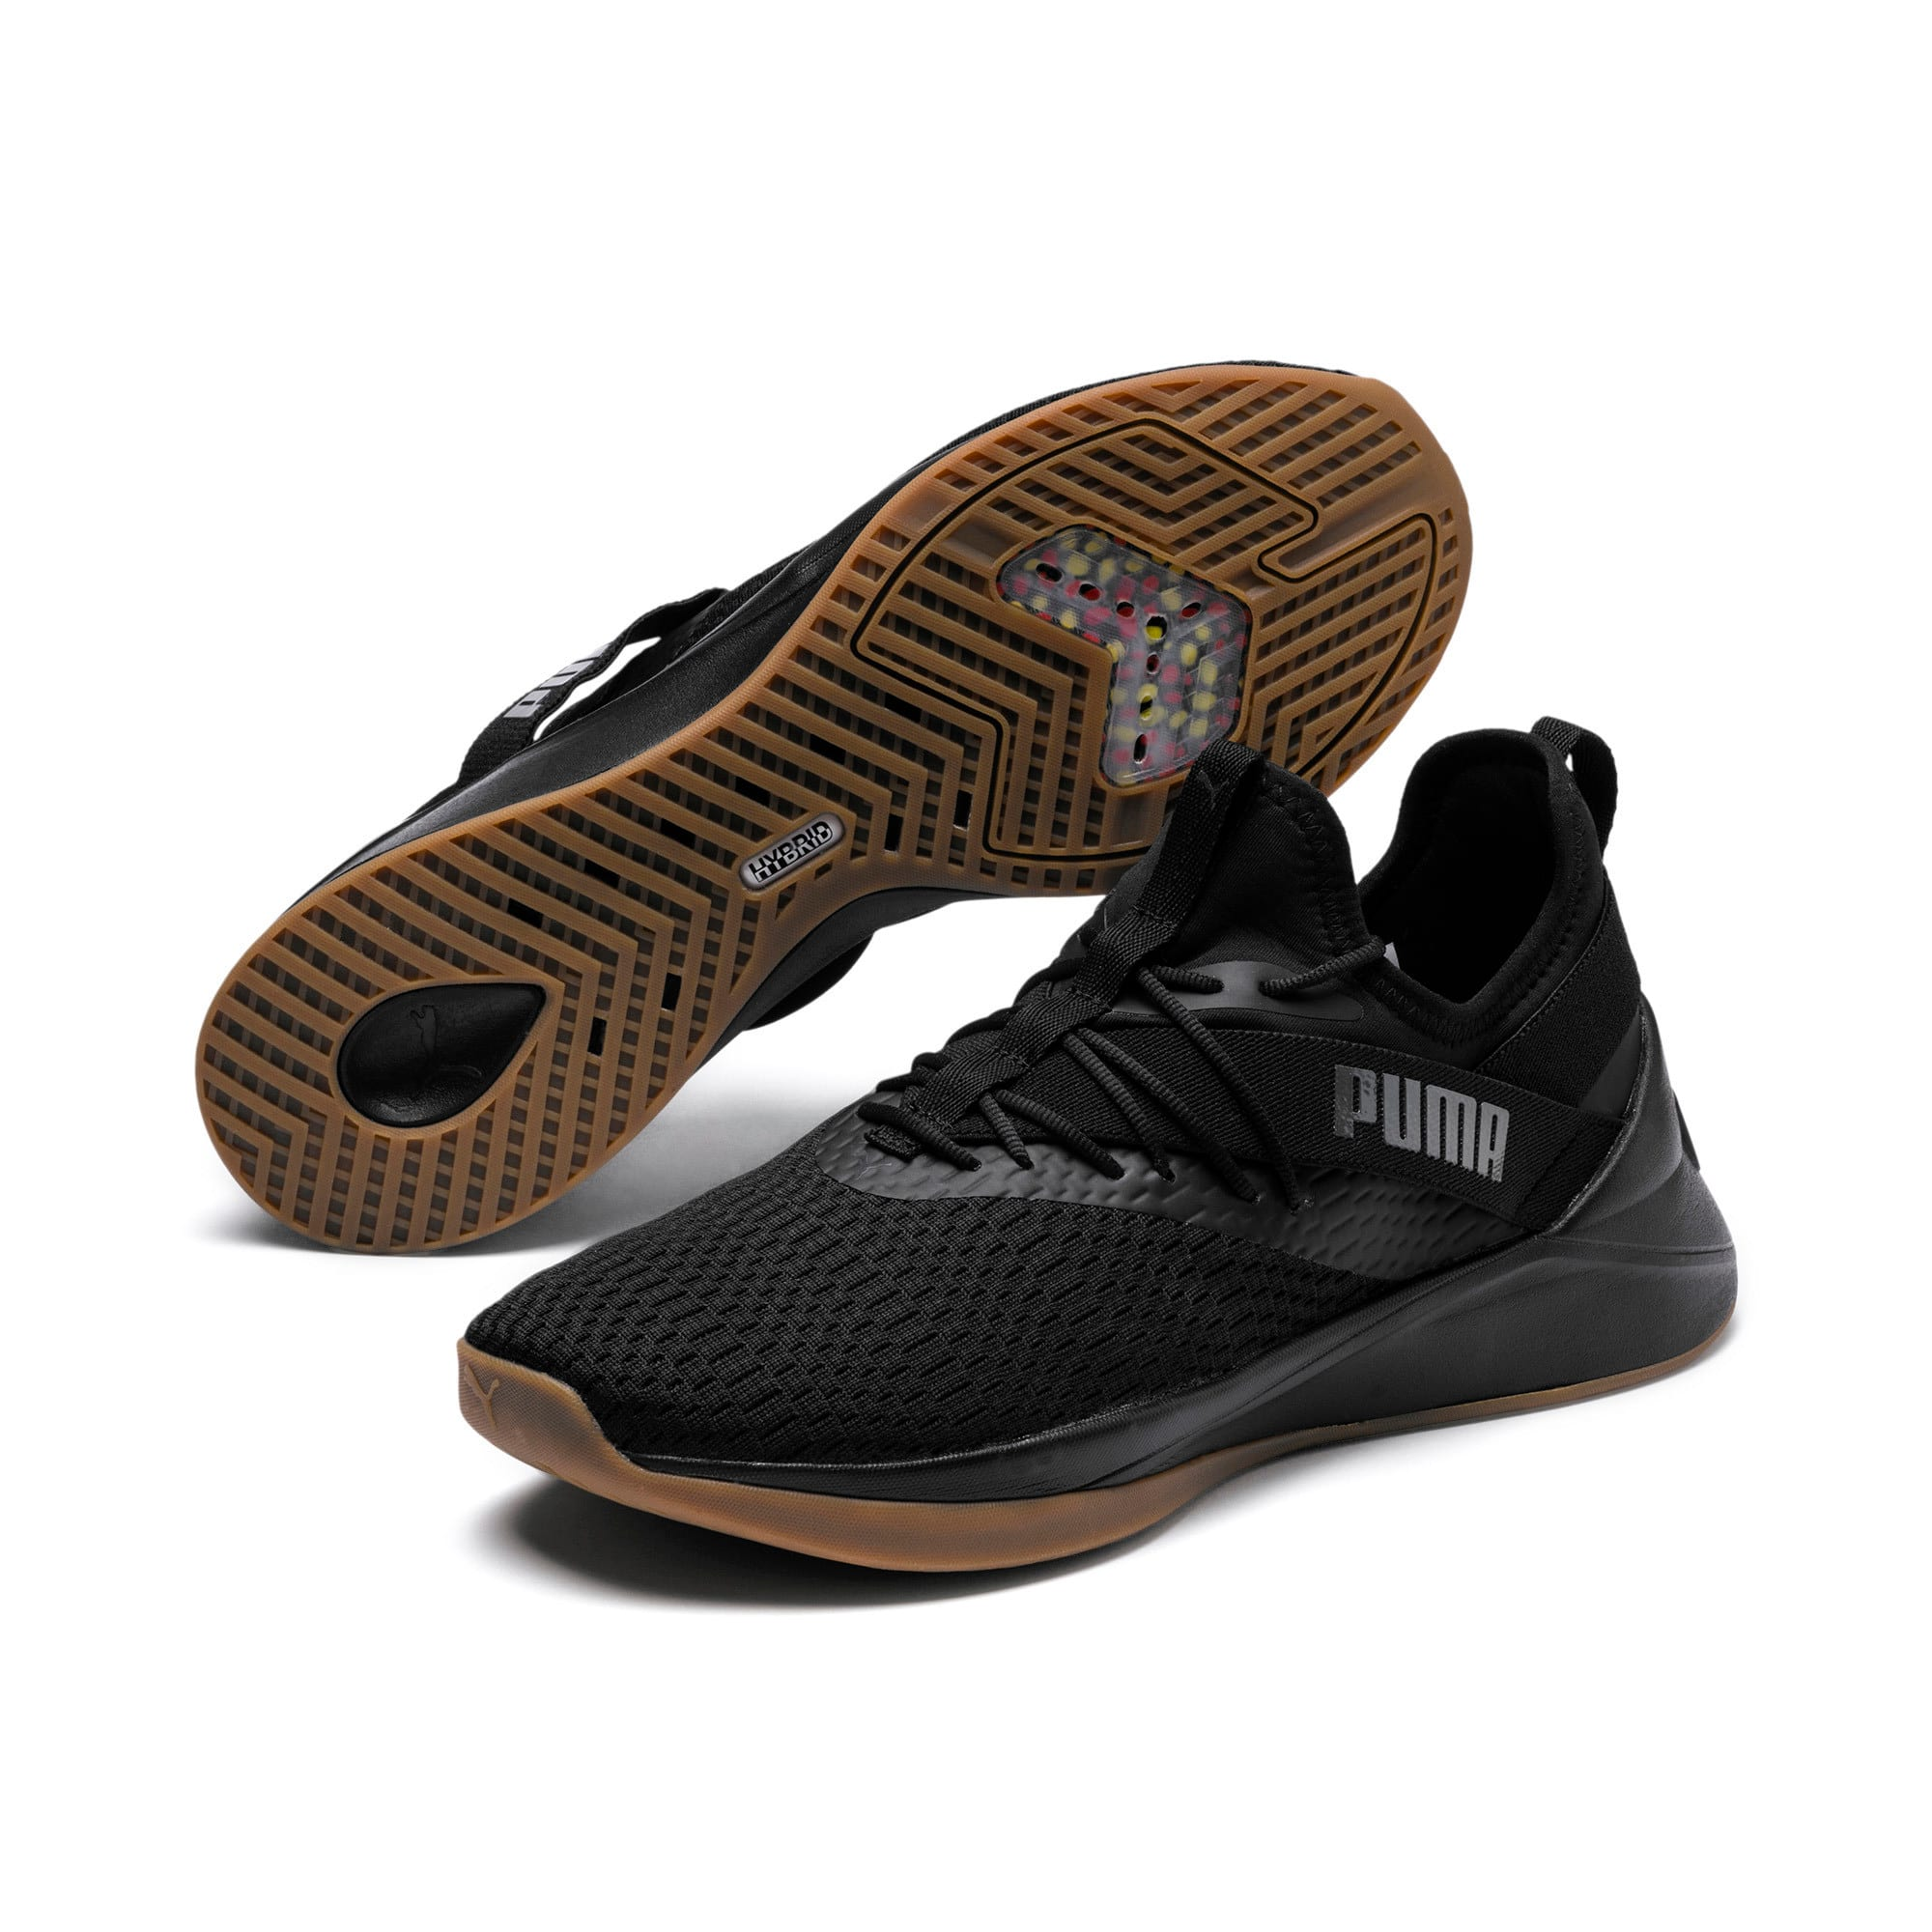 Thumbnail 2 of Jaab XT Summer Men's Training Shoes, Puma Black-Asphalt, medium